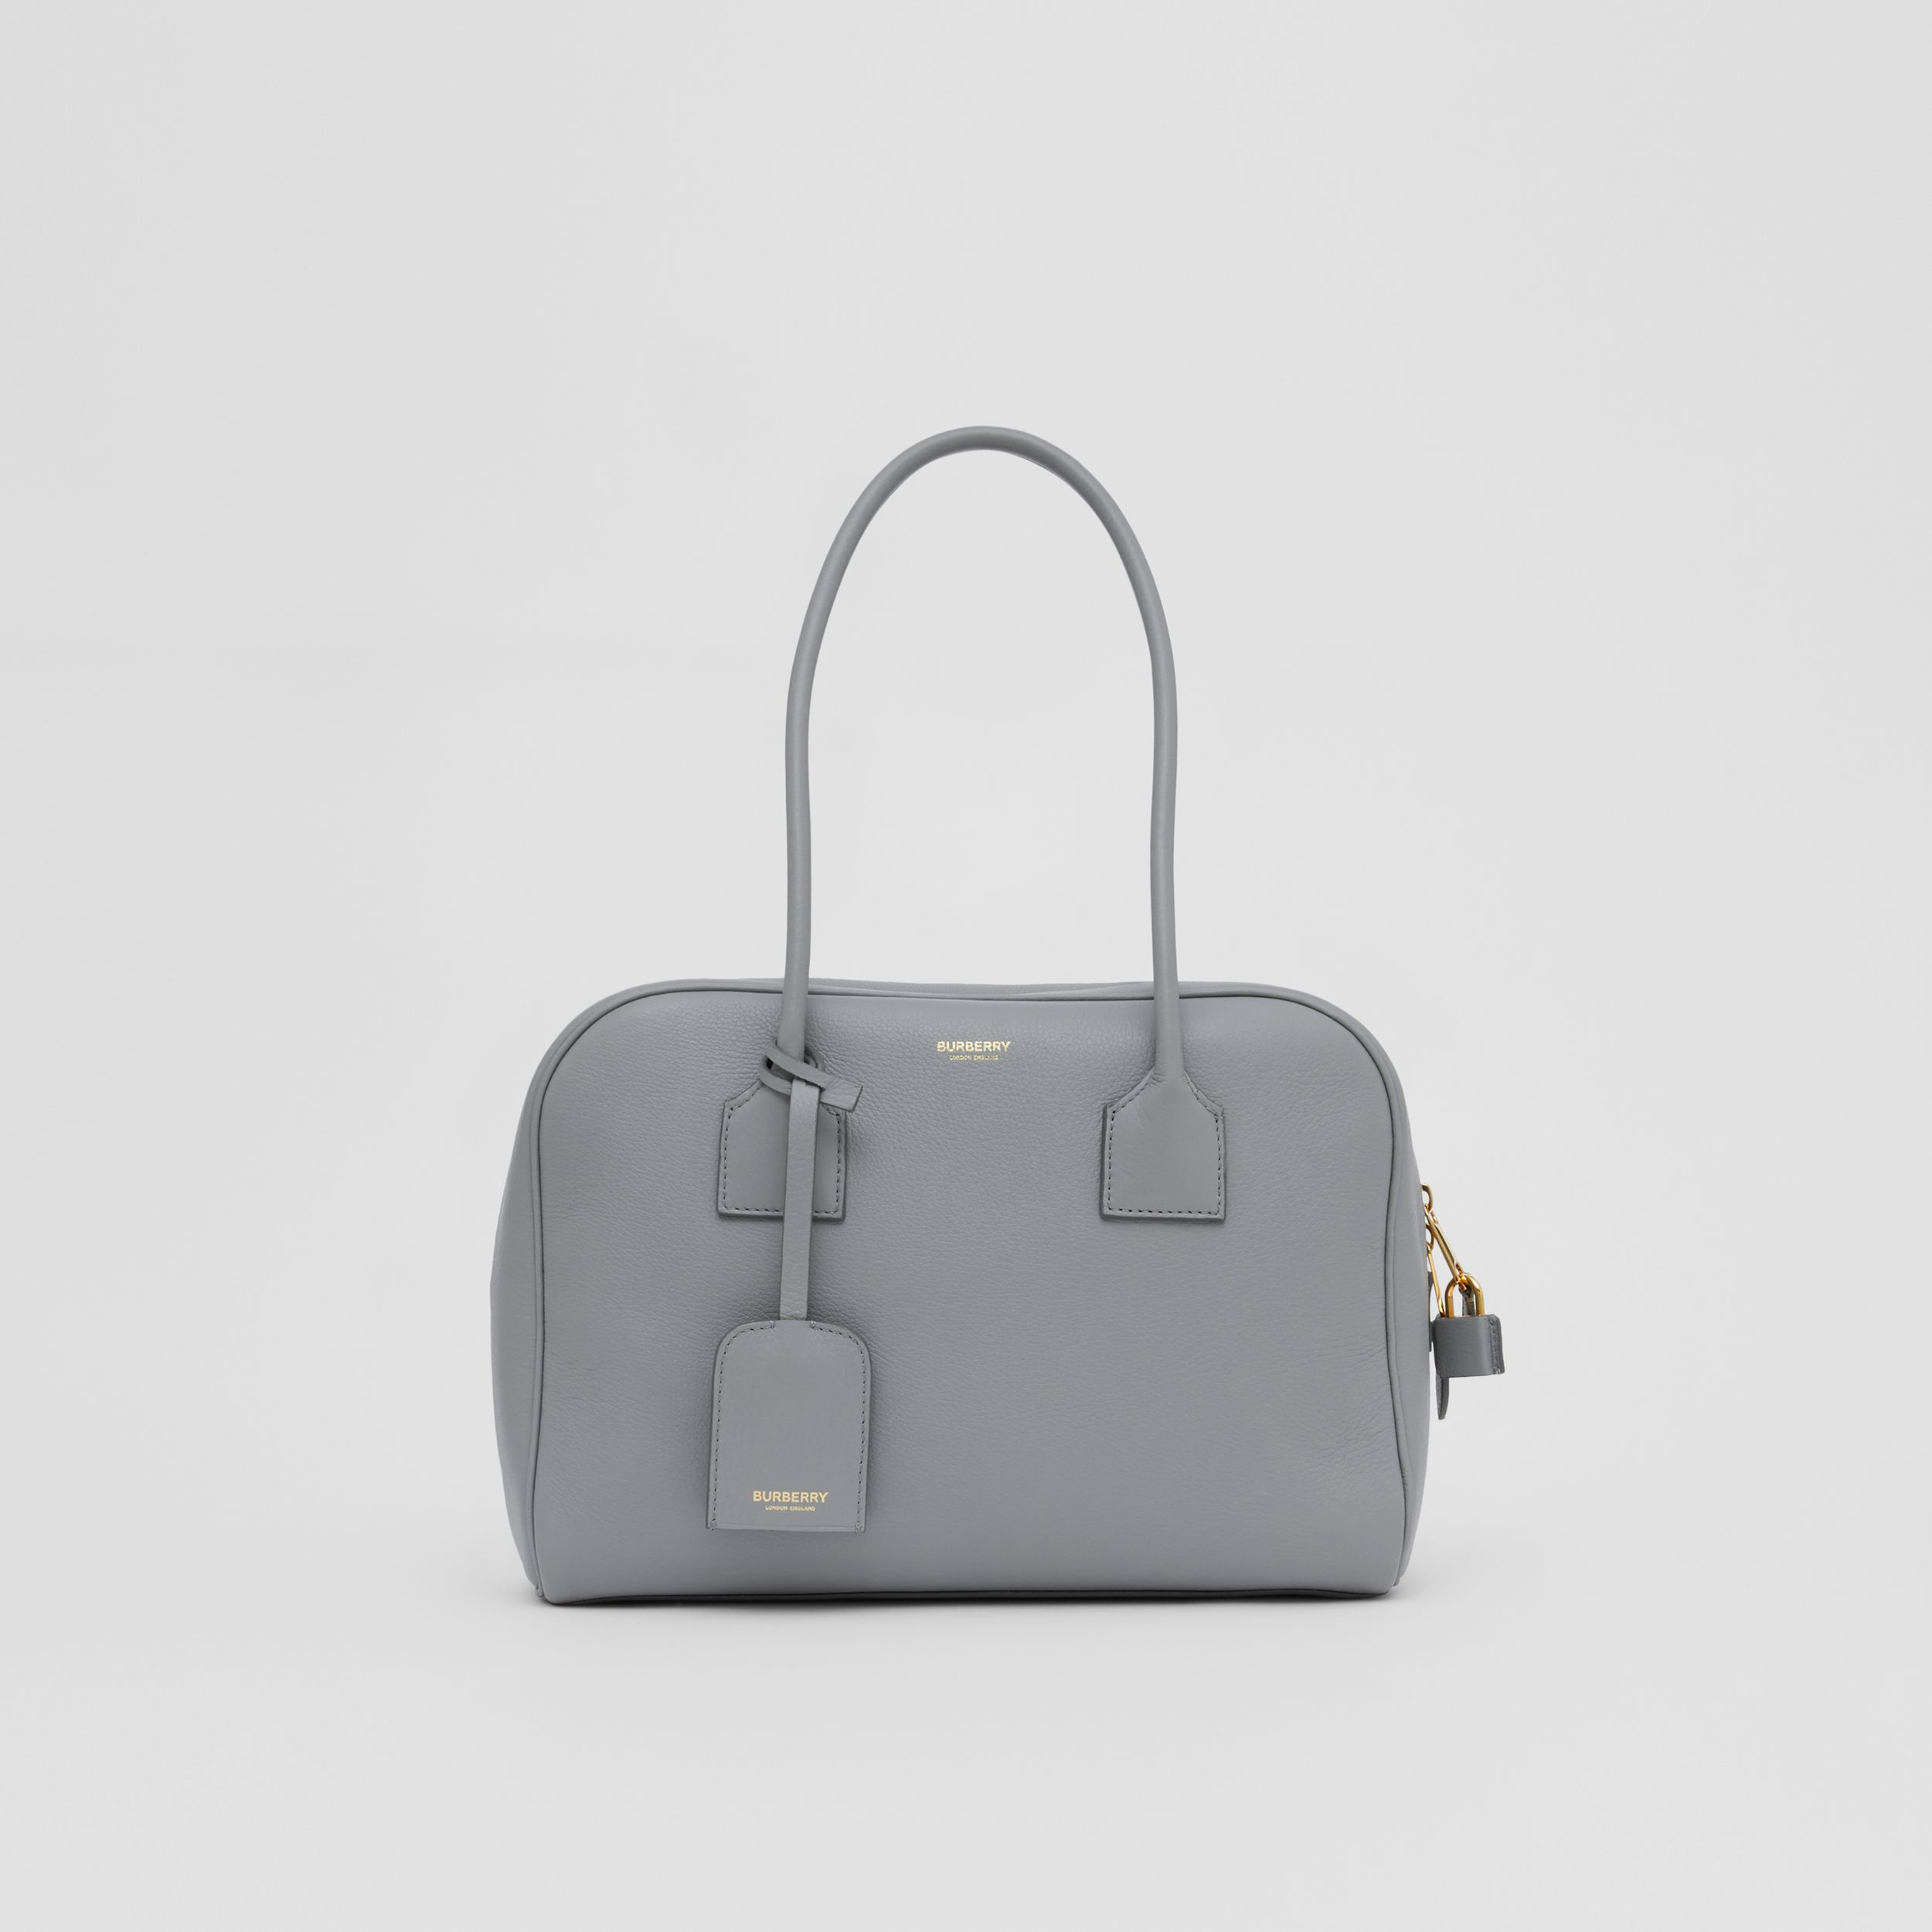 Medium Leather Half Cube Bag in Cloud Grey - Women | Burberry Hong Kong S.A.R. - 1